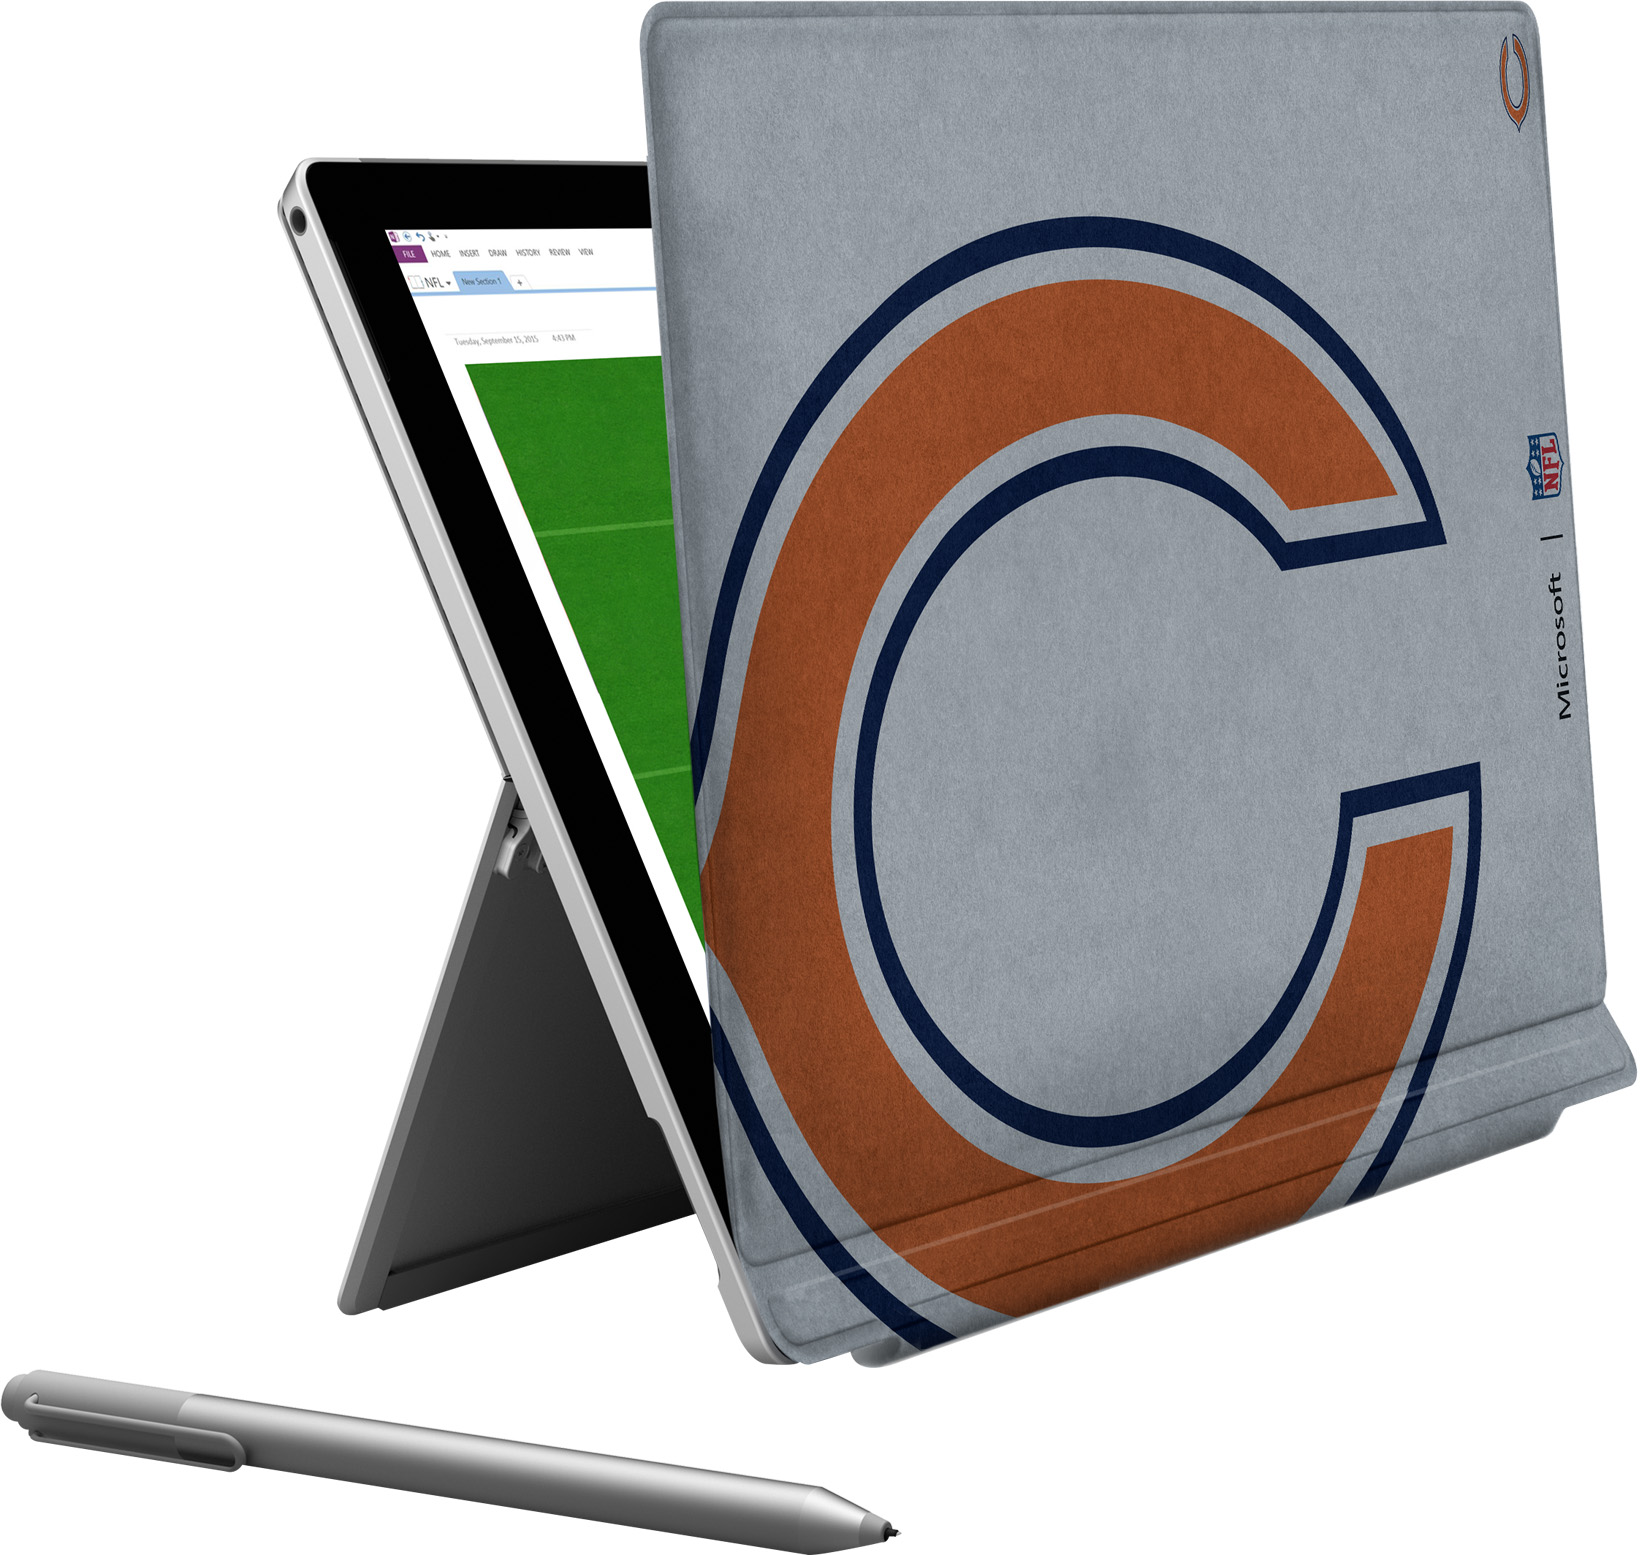 Microsoft Surface Pro 4 Chicago Bears Type Cover